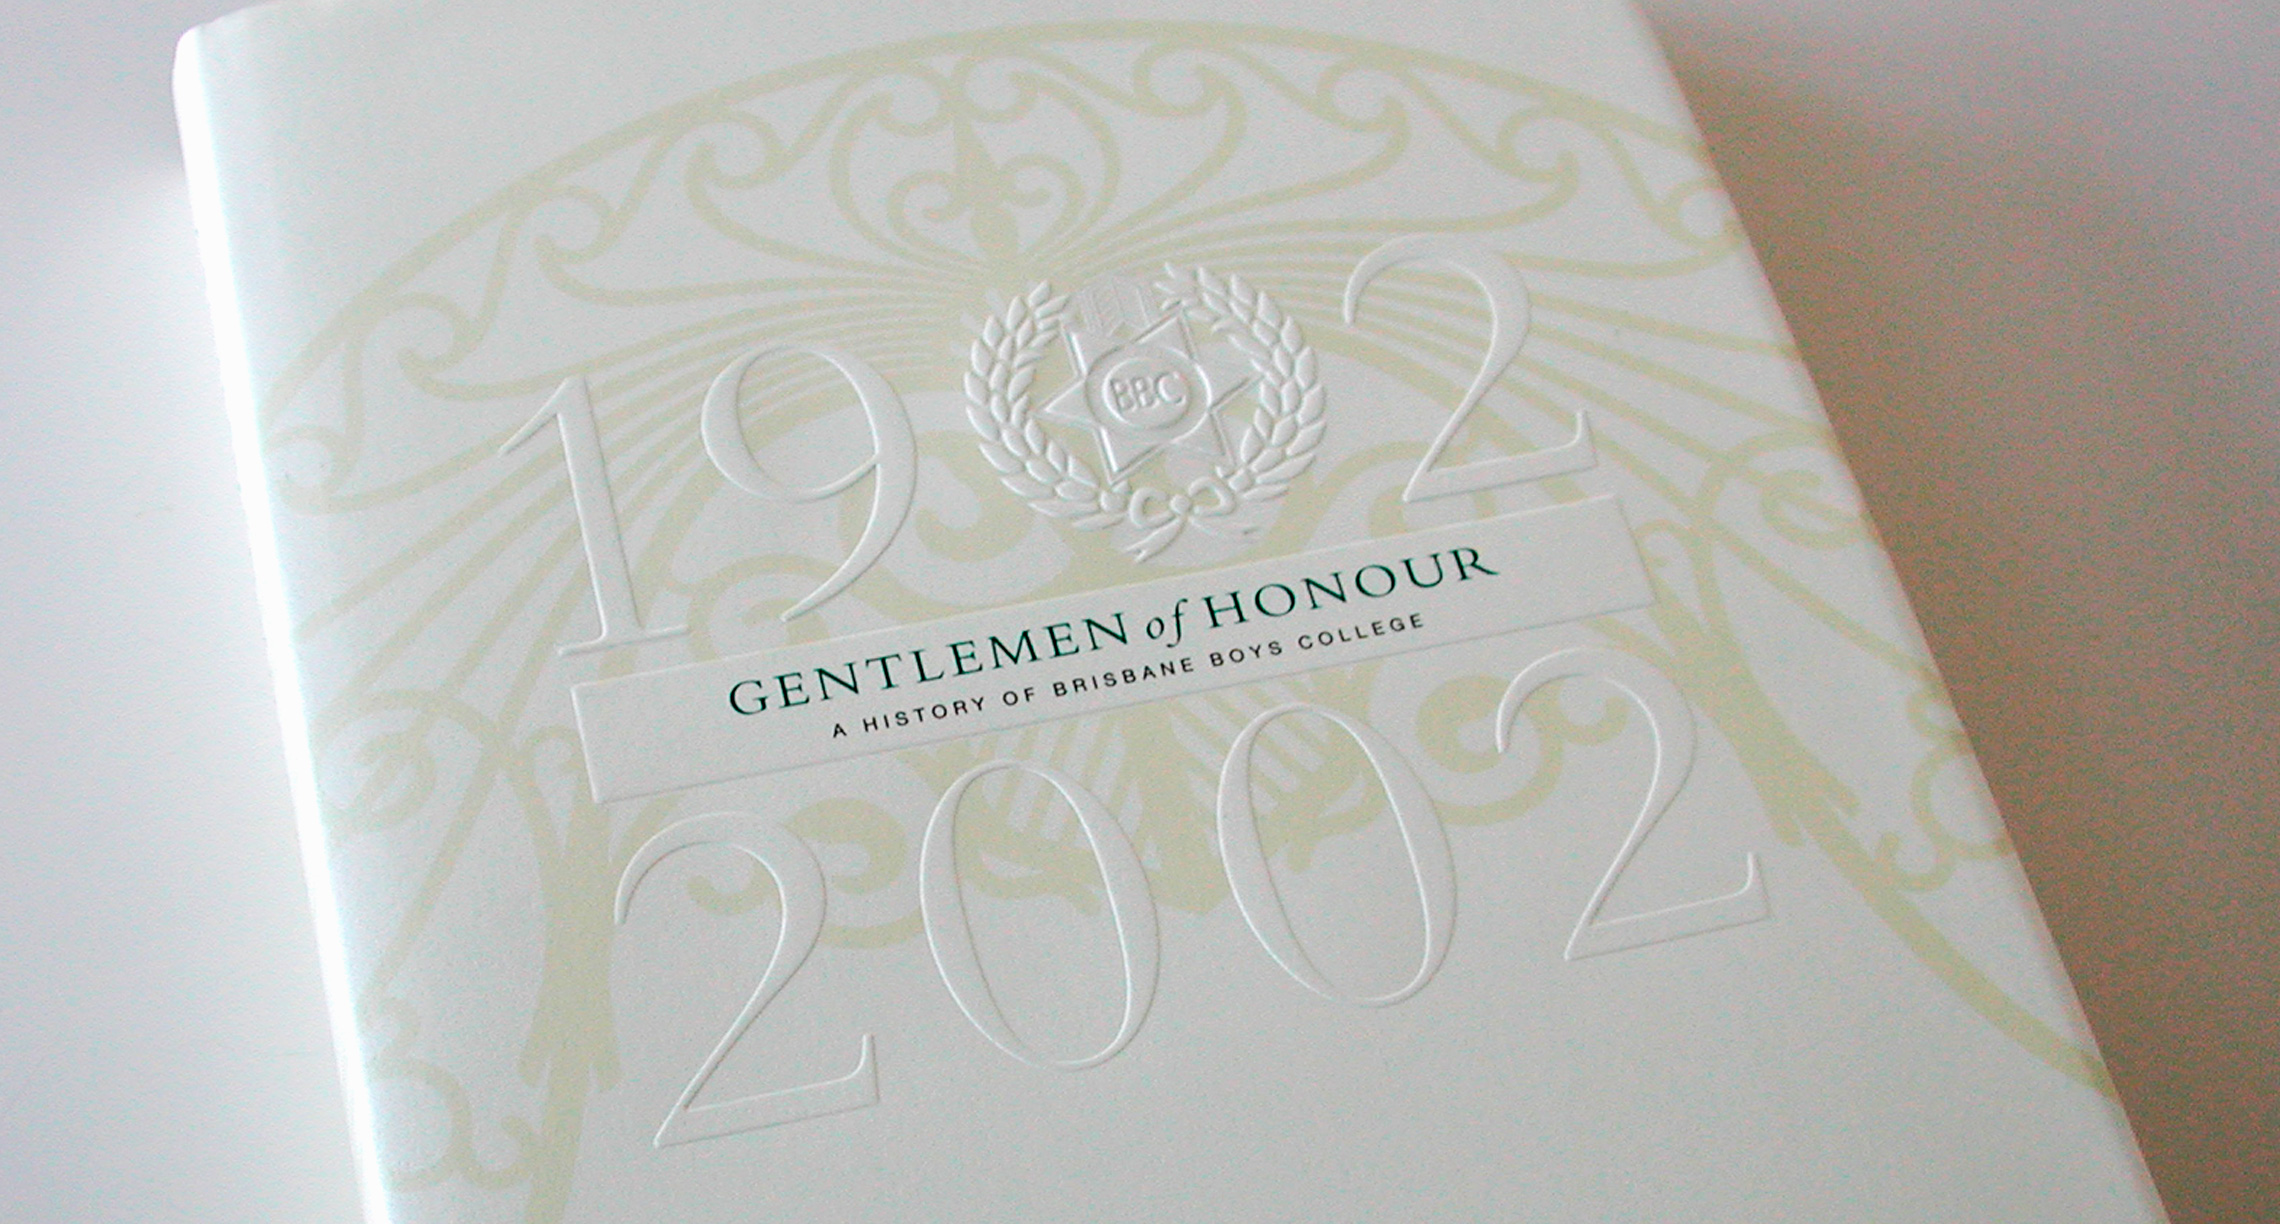 BBC Centenary Book Gentlemen of Honour 1902-2002